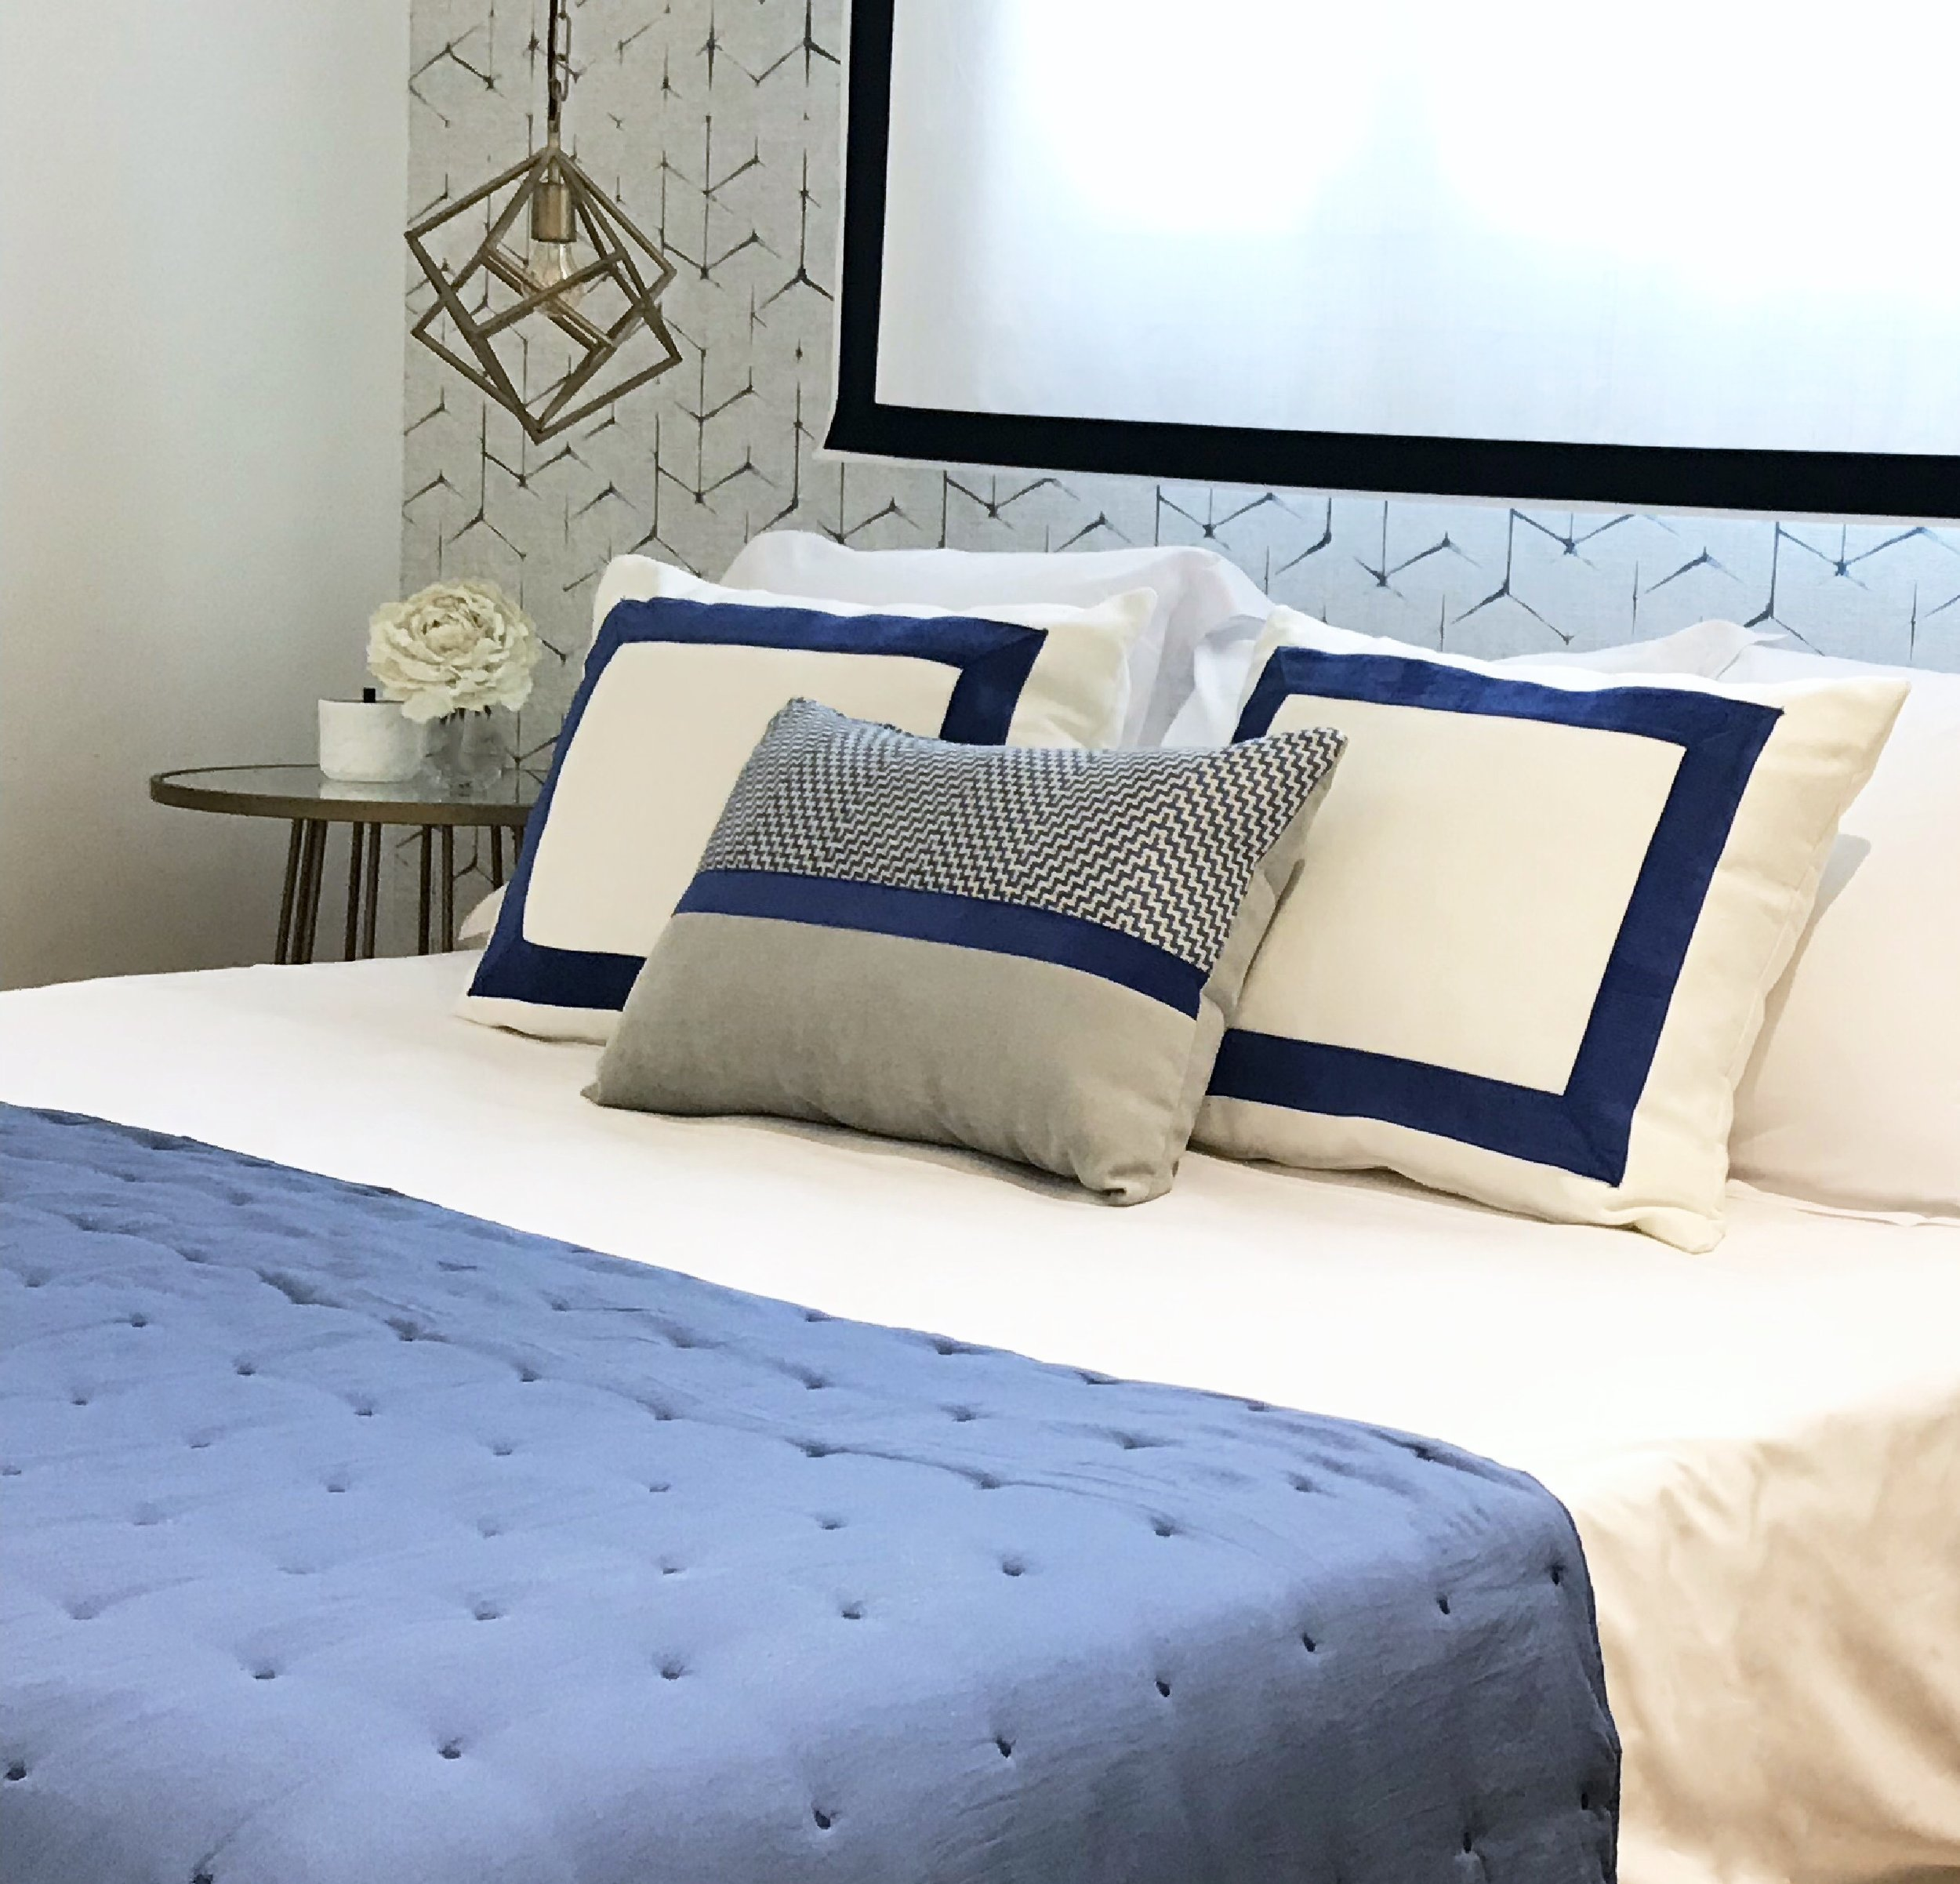 Image of professionally styled bed in blues and off white tones with graphic wallpaper and hanging dynamic light.